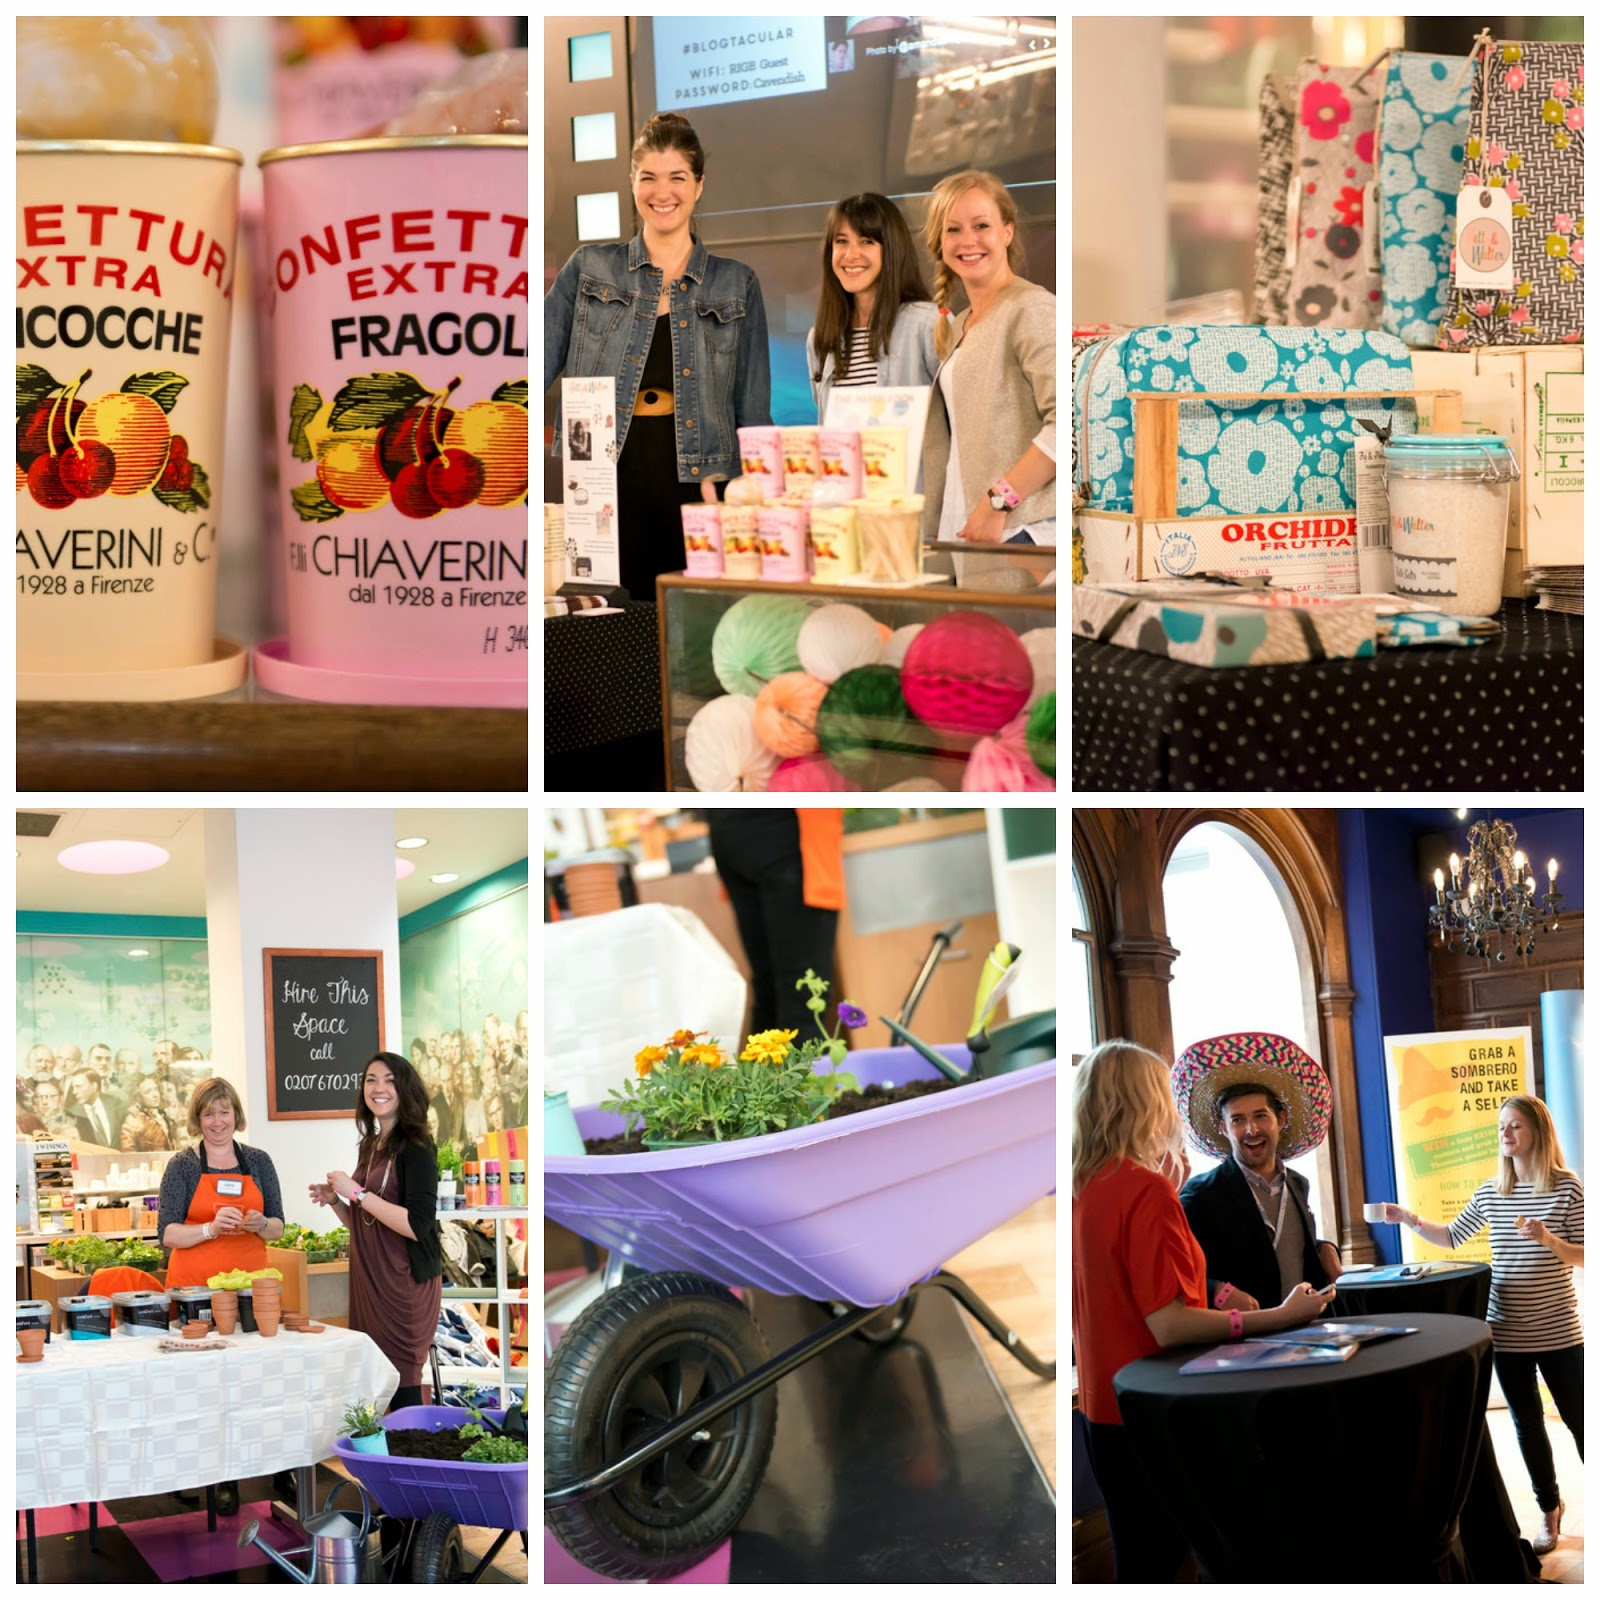 Sponsors at the Blogtacular event. BandQ, The Hambledon, Thompson Holidays, Betty & Walter.